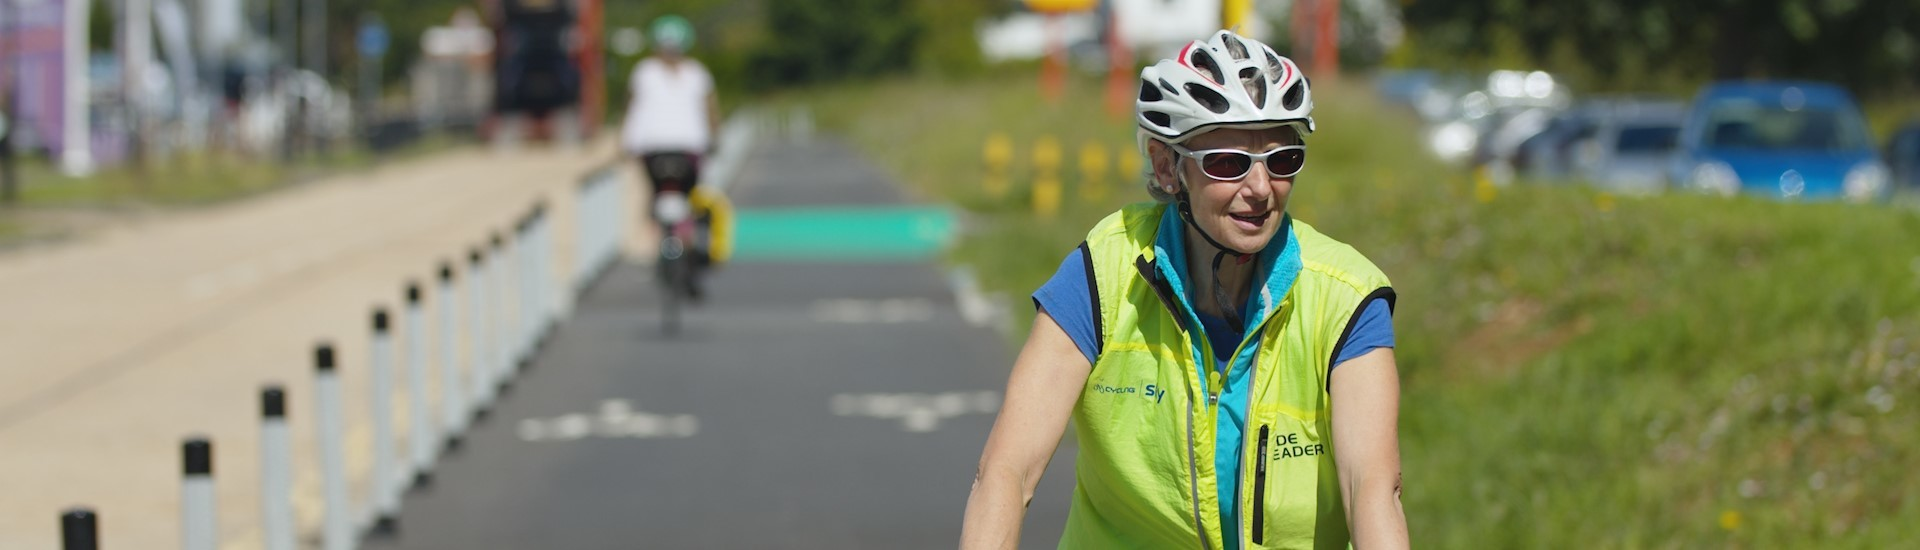 Cycle from Southampton to Totton